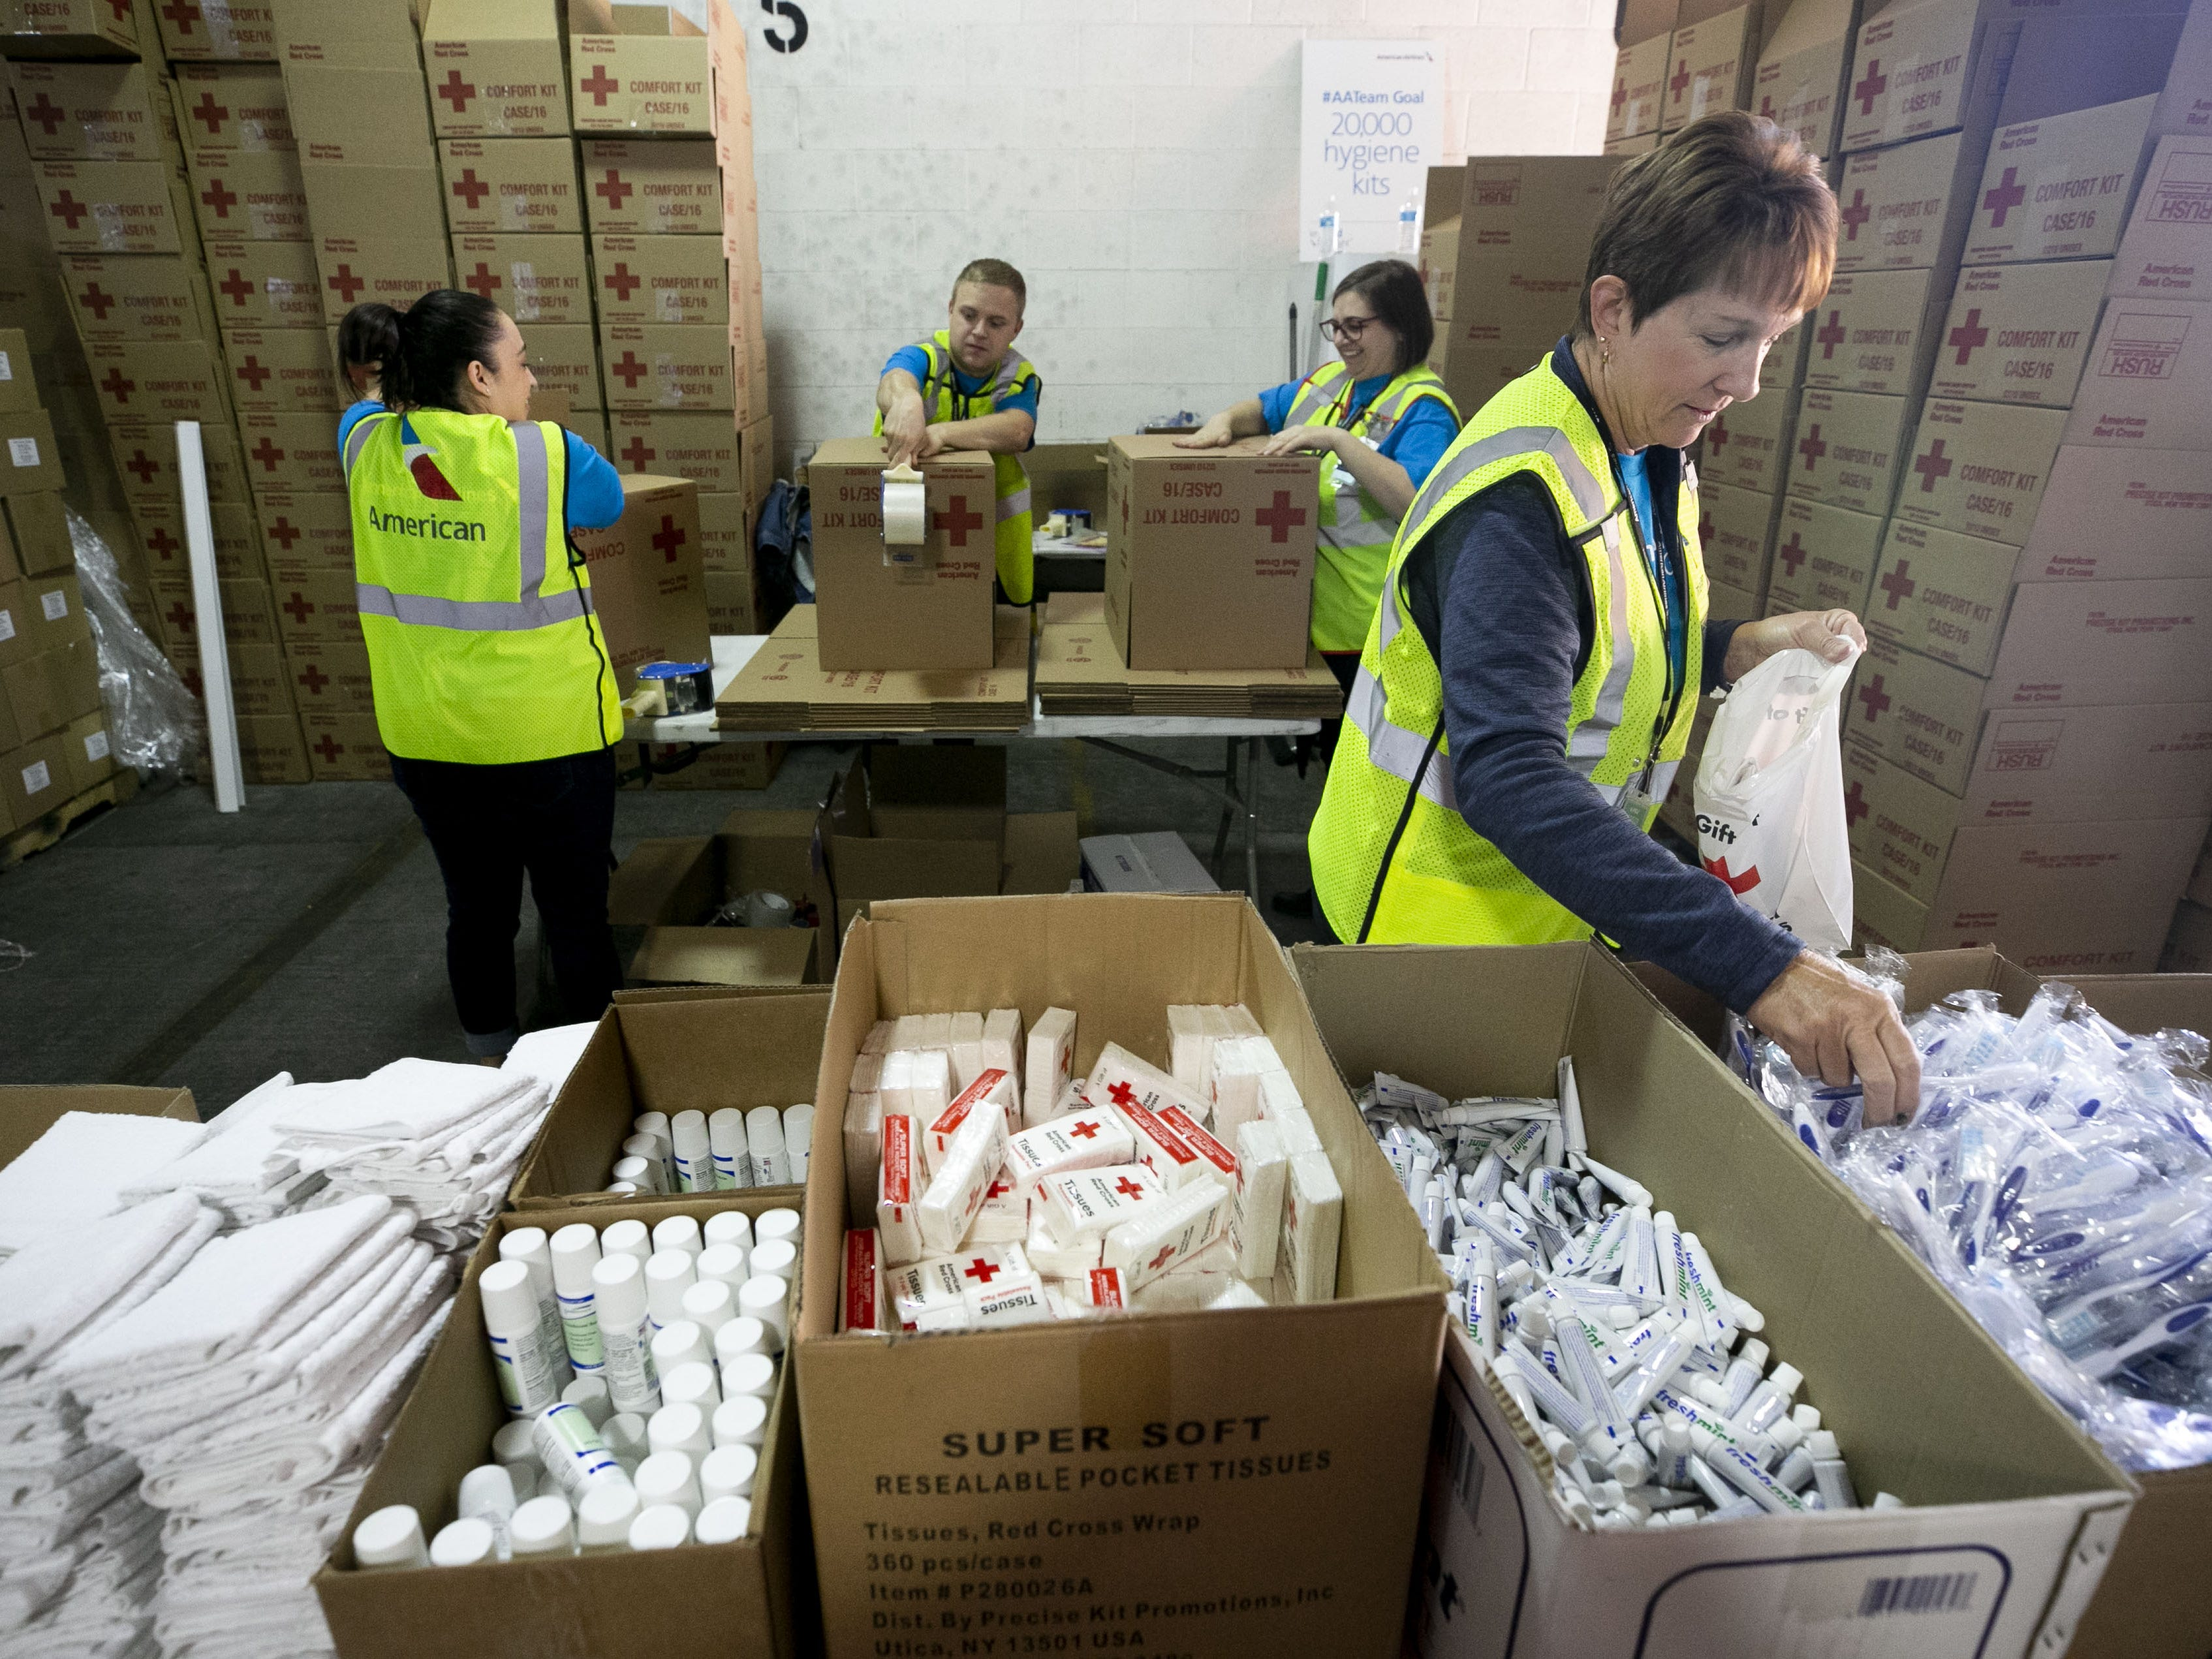 American Airlines employee Lore Taylor packages amenity kits for the victims of the California wildfires, at the American Airlines cargo facility in Phoenix on Tuesday, Nov. 27, 2018.